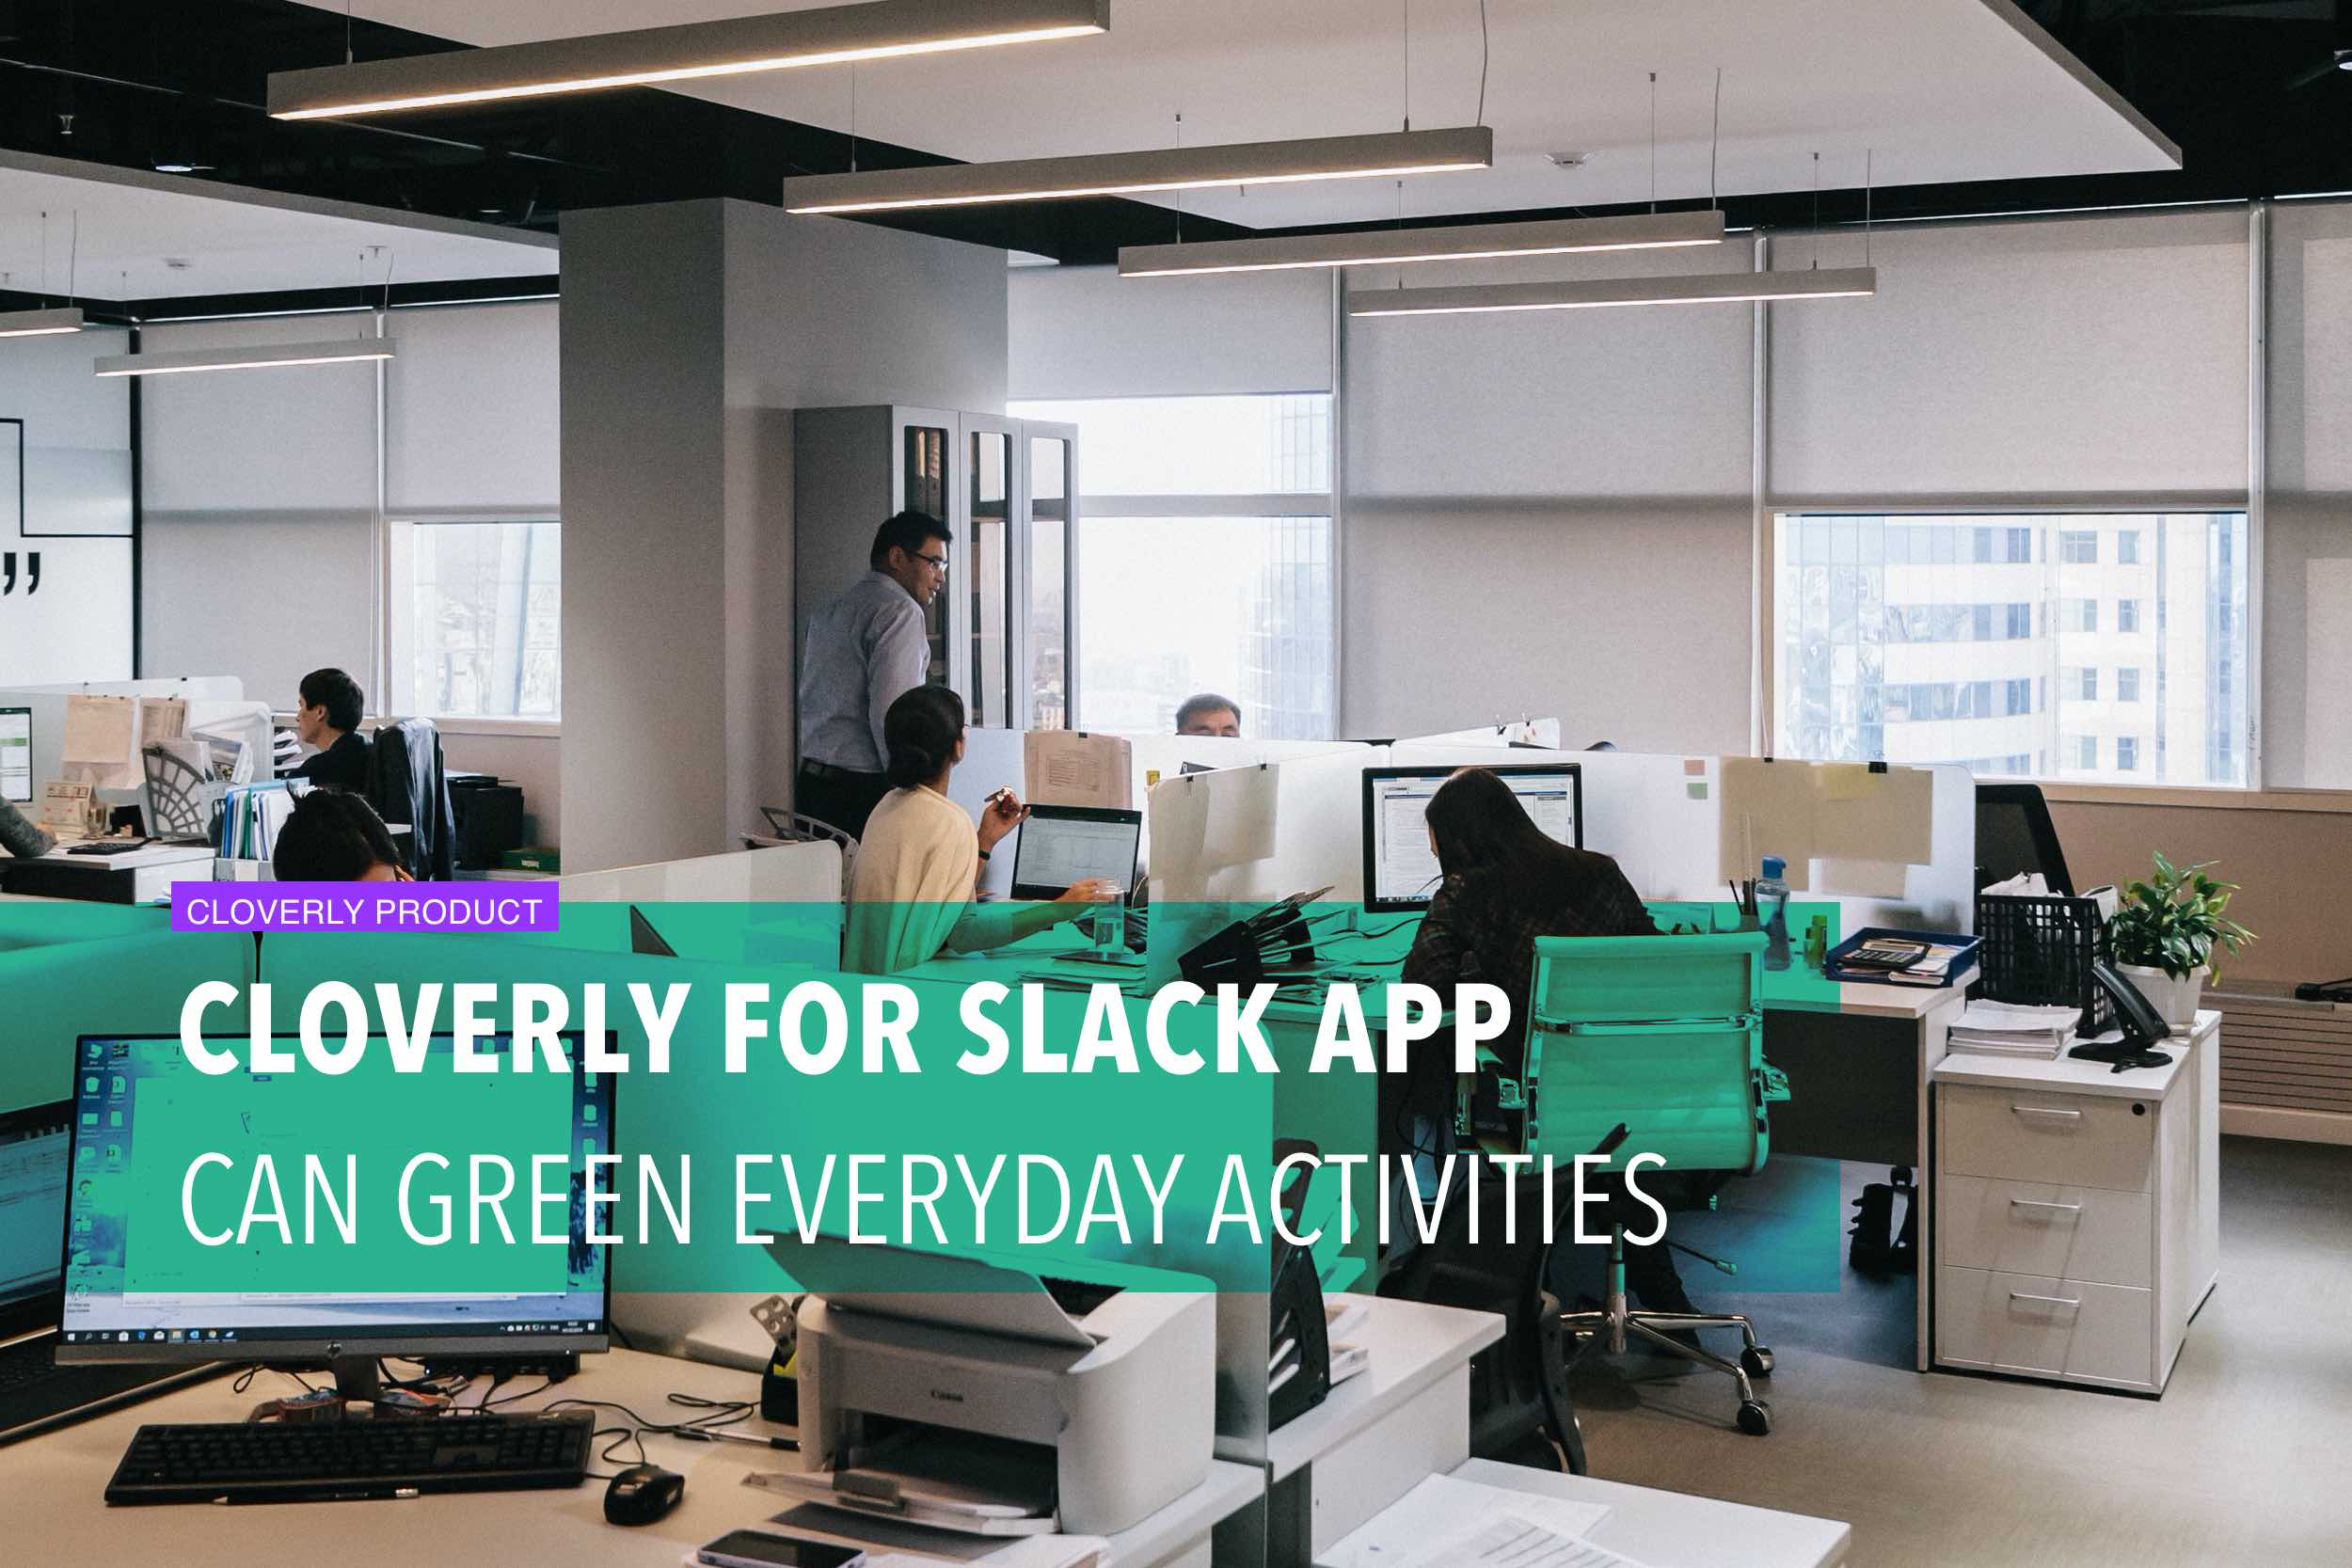 Cloverly for Slack app can green everyday activities